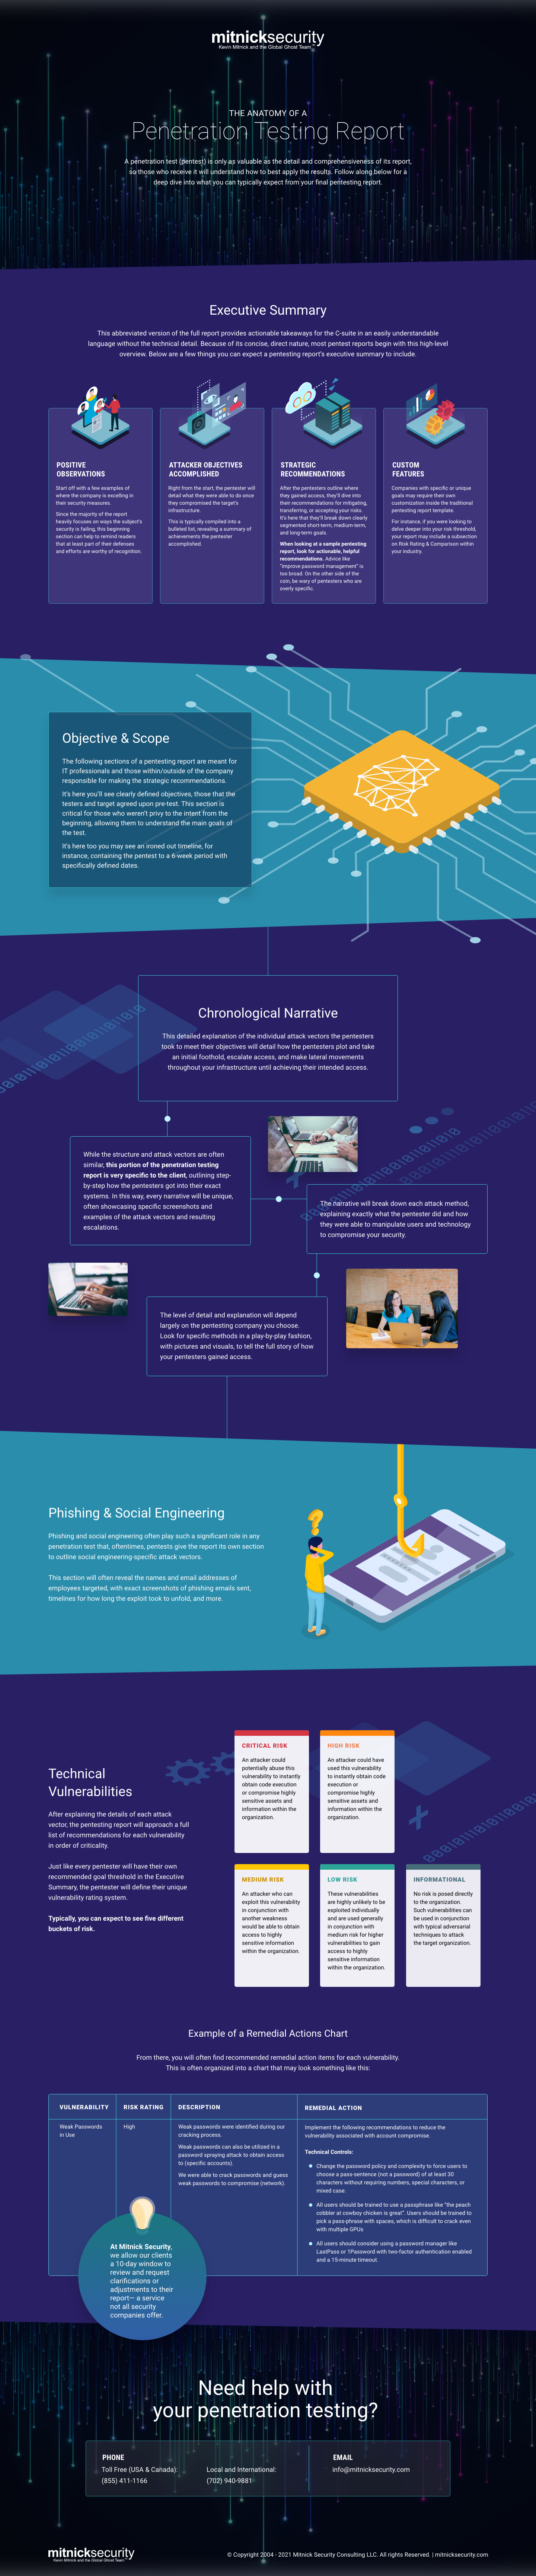 Mitnick_PenetrationTesting-Infographic_final-02222021